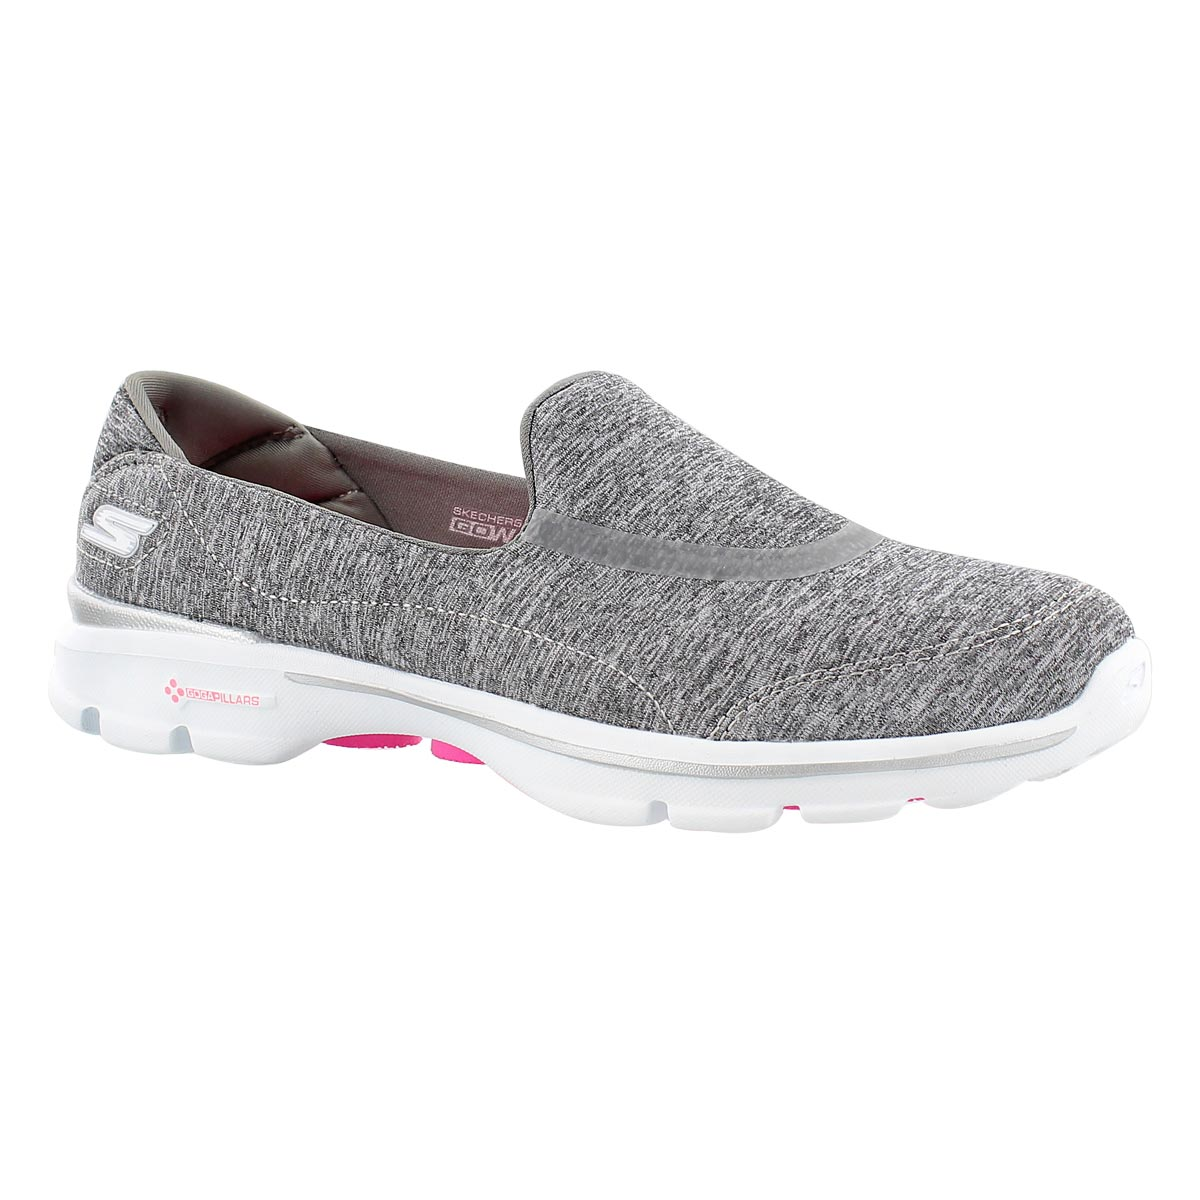 Women's GOwalk 3 REBOOT grey slip on shoes